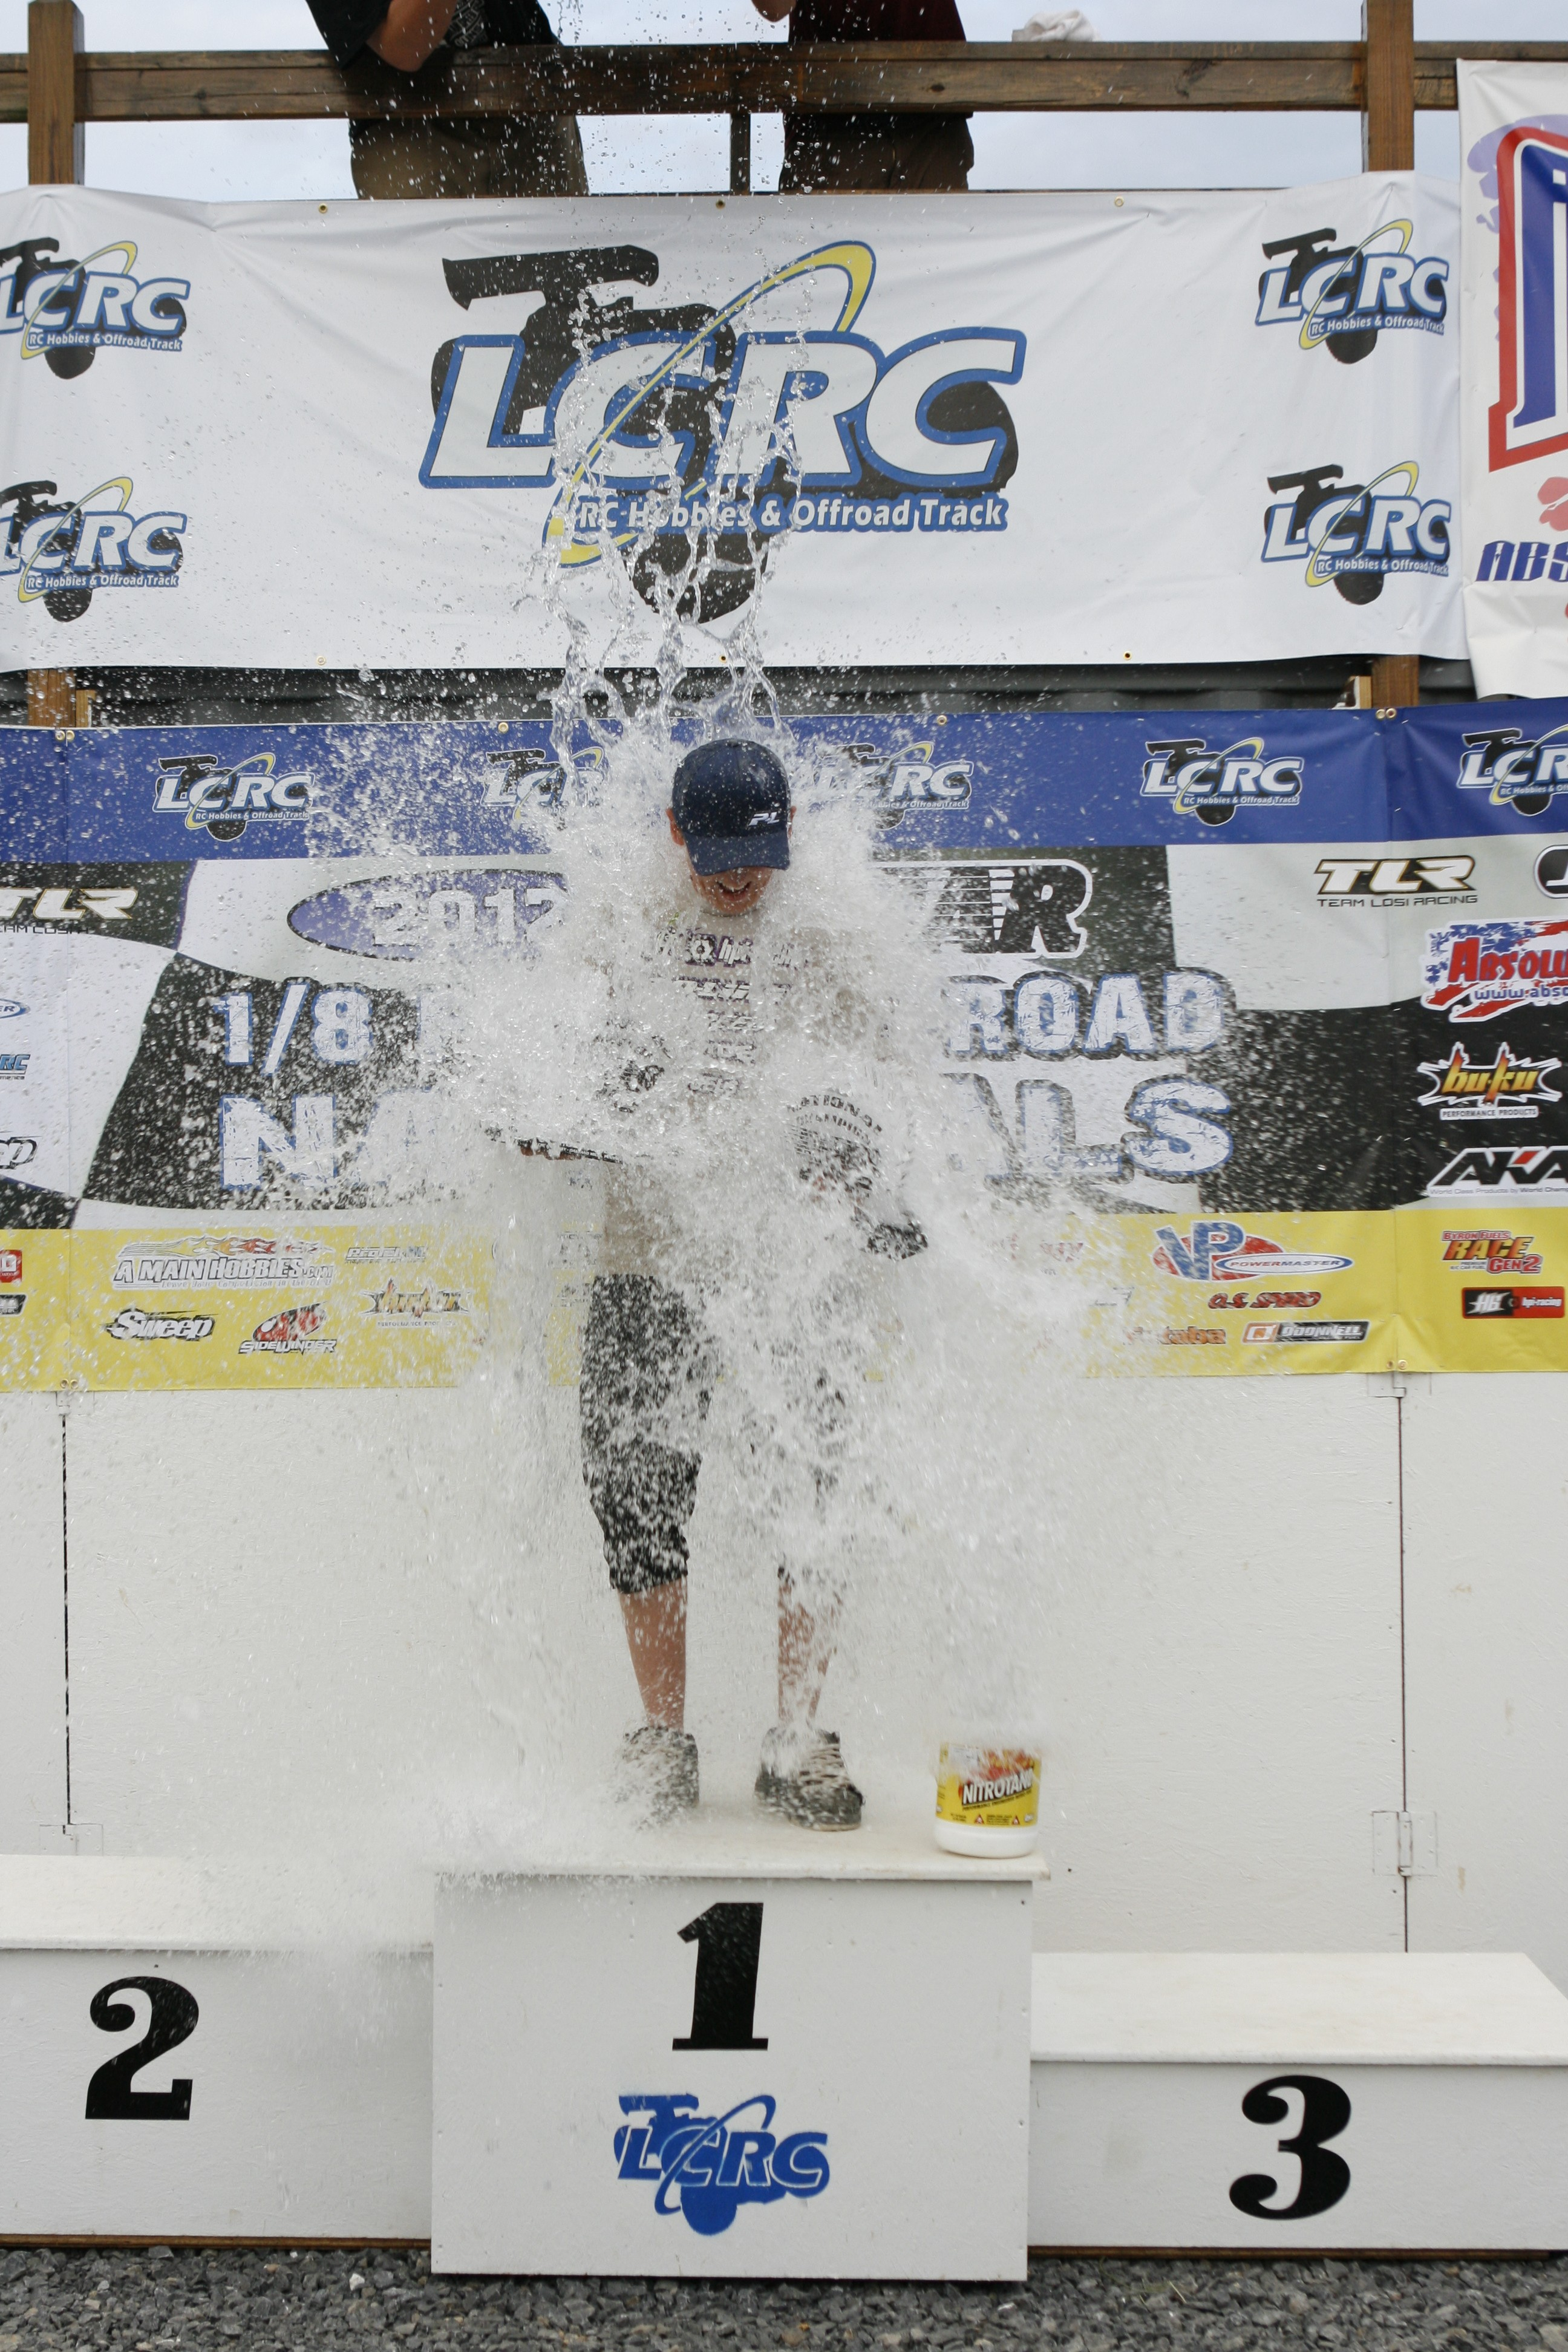 2012 ROAR Fuel Off-Road Nationals – Ty Tessmann Sweeps!